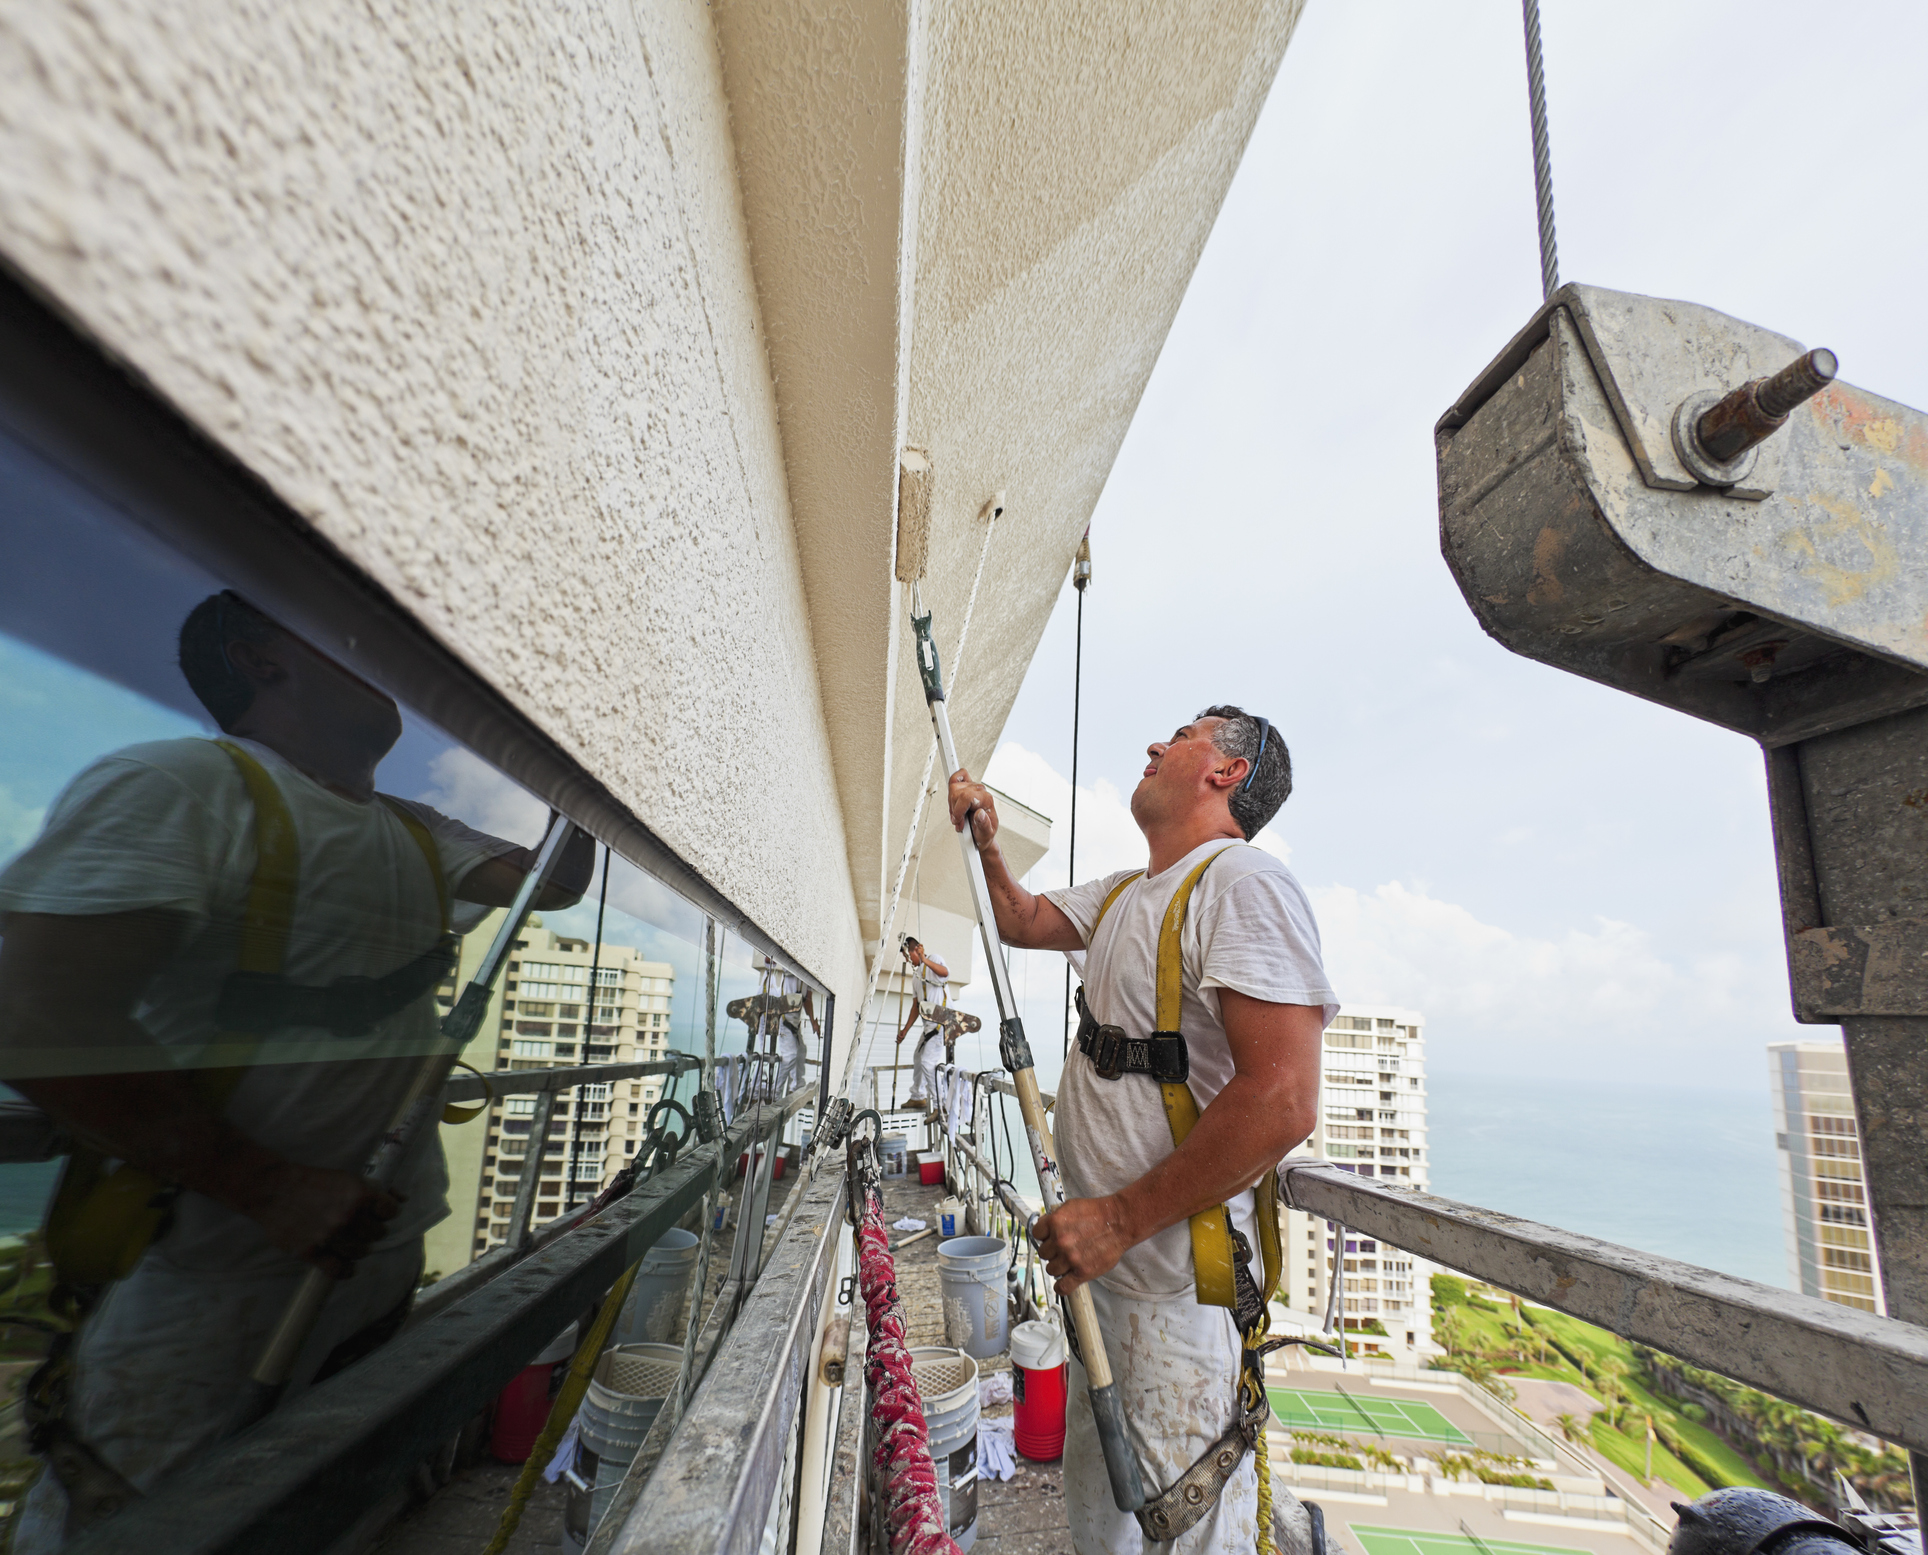 Two painters are painting a high rise building from a swing stage.